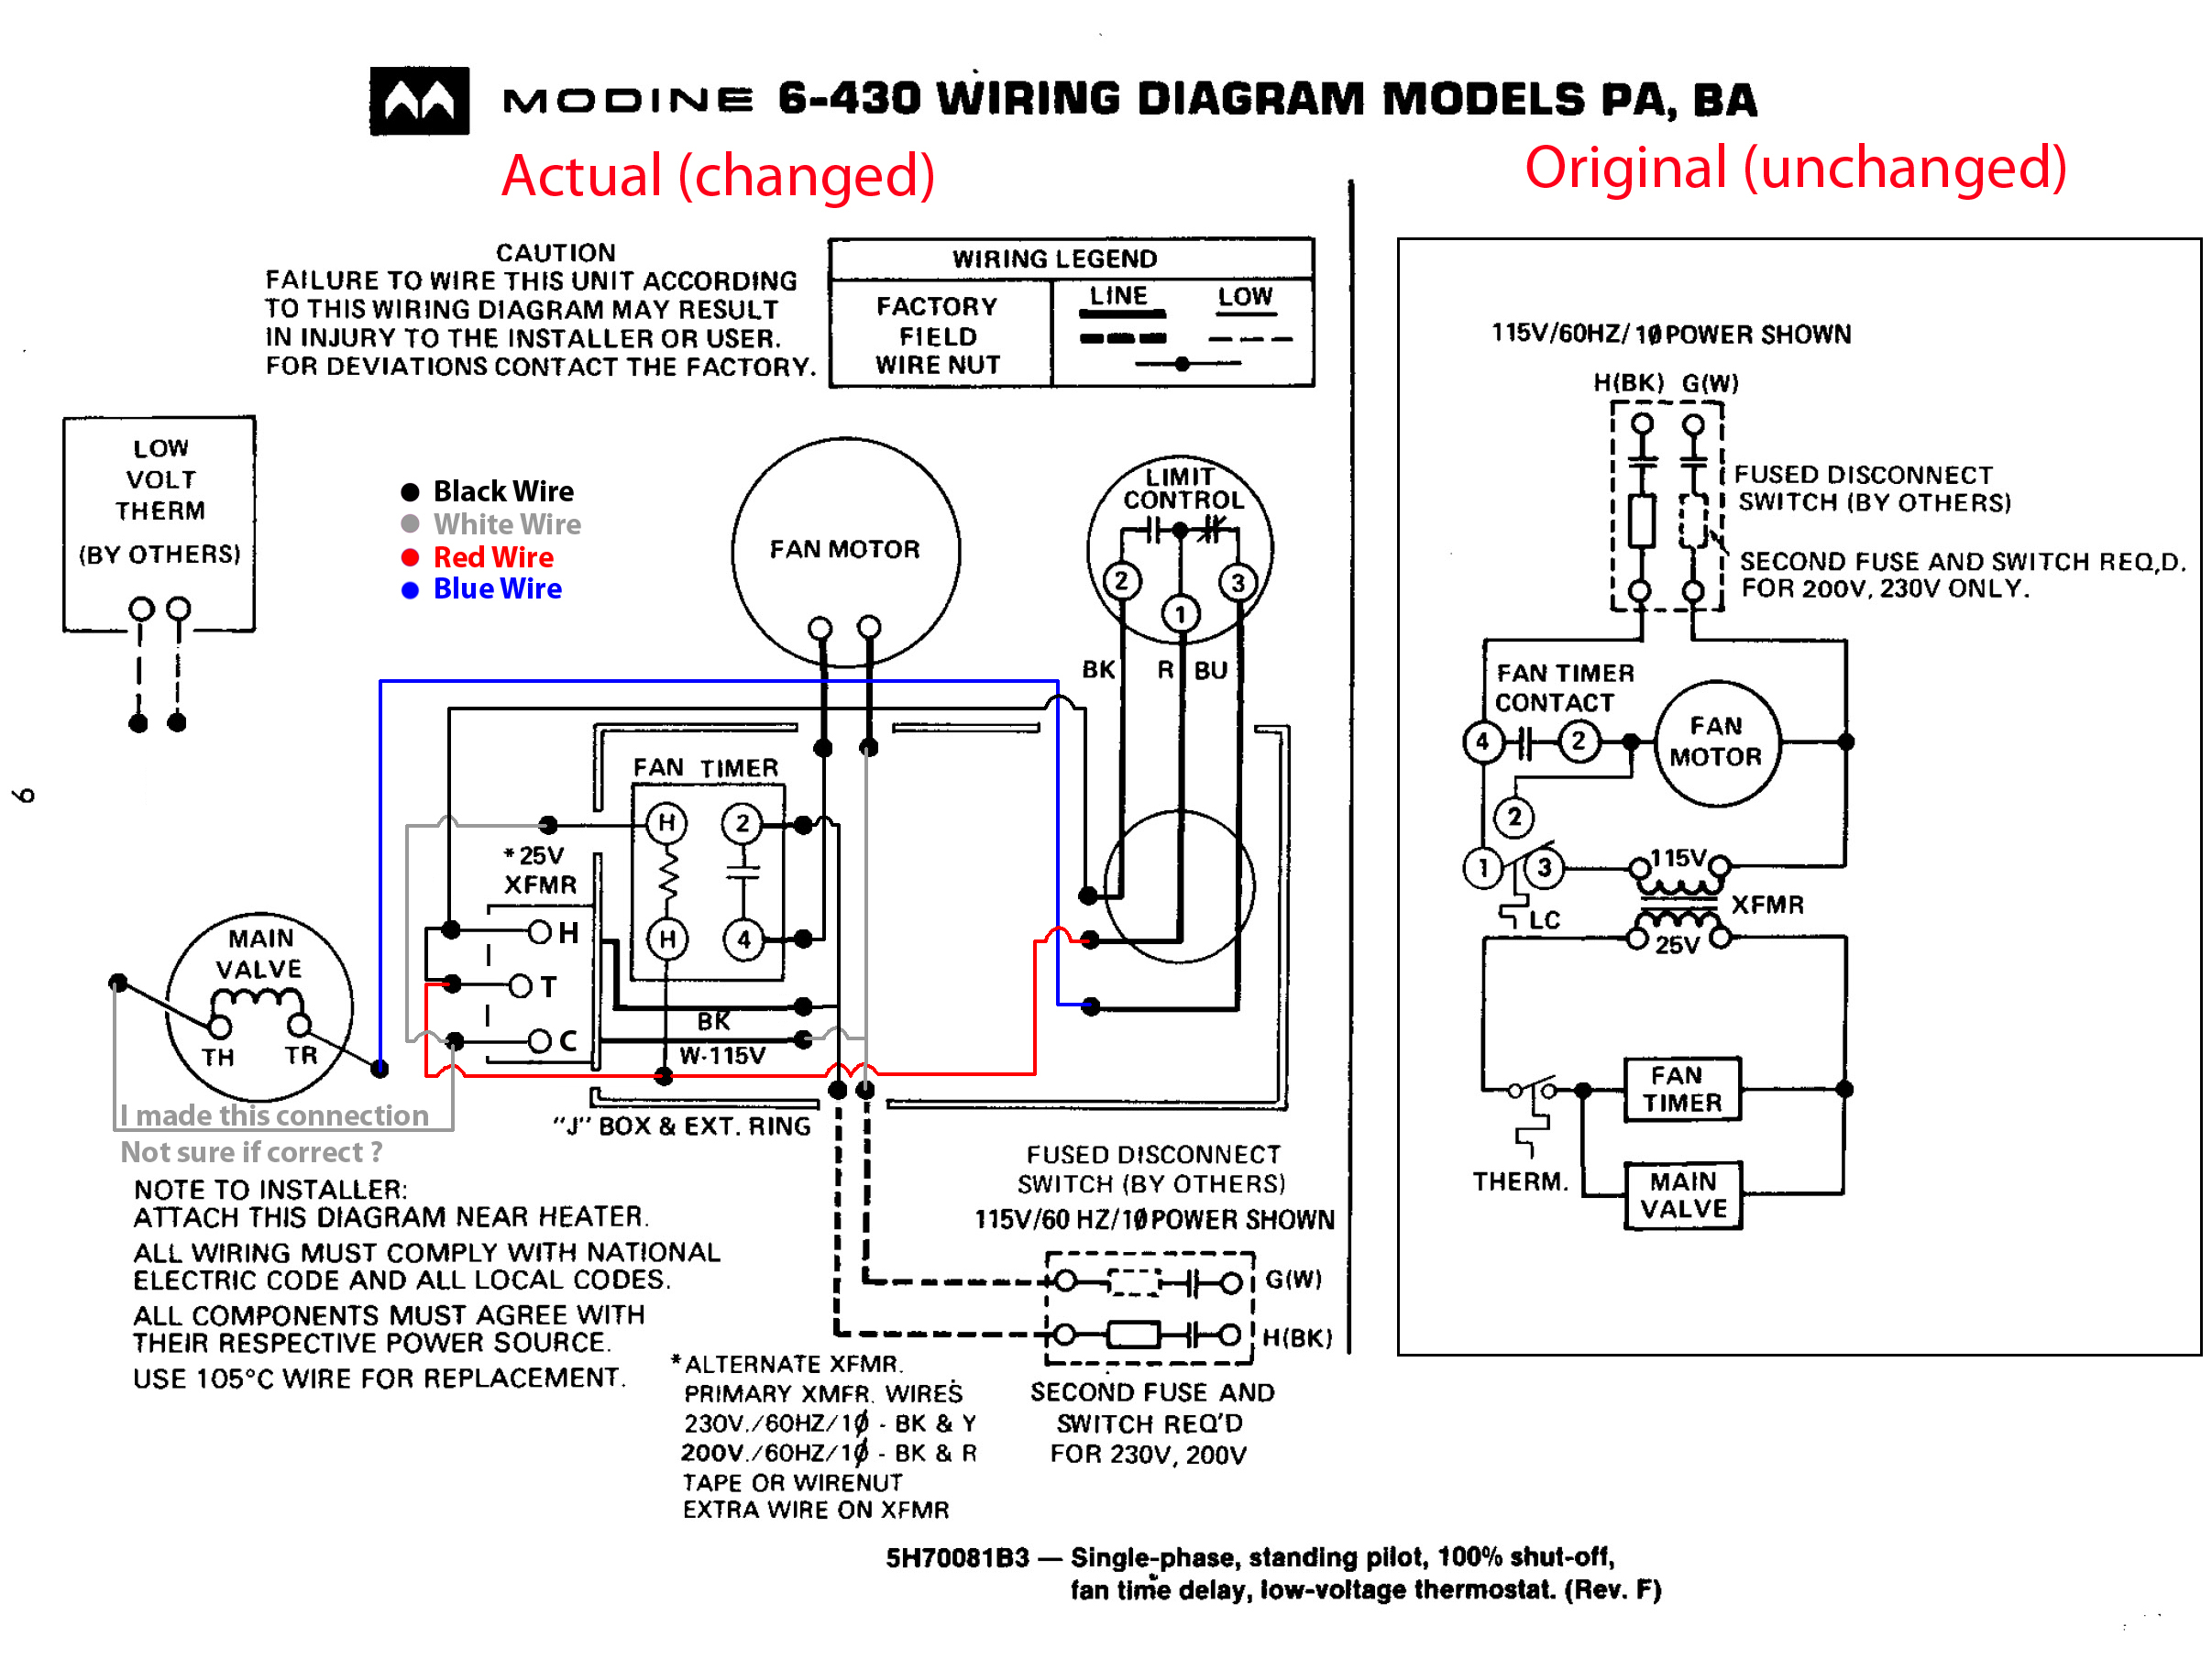 Reznor Waste Oil Furnace Thermostat Wiring Library. Reznor Xl 200 Wiring Diagram Wire Center \u2022 Unit Heater Replacement Parts X758. Wiring. Reznor Heater Wiring Diagram Hvac At Scoala.co